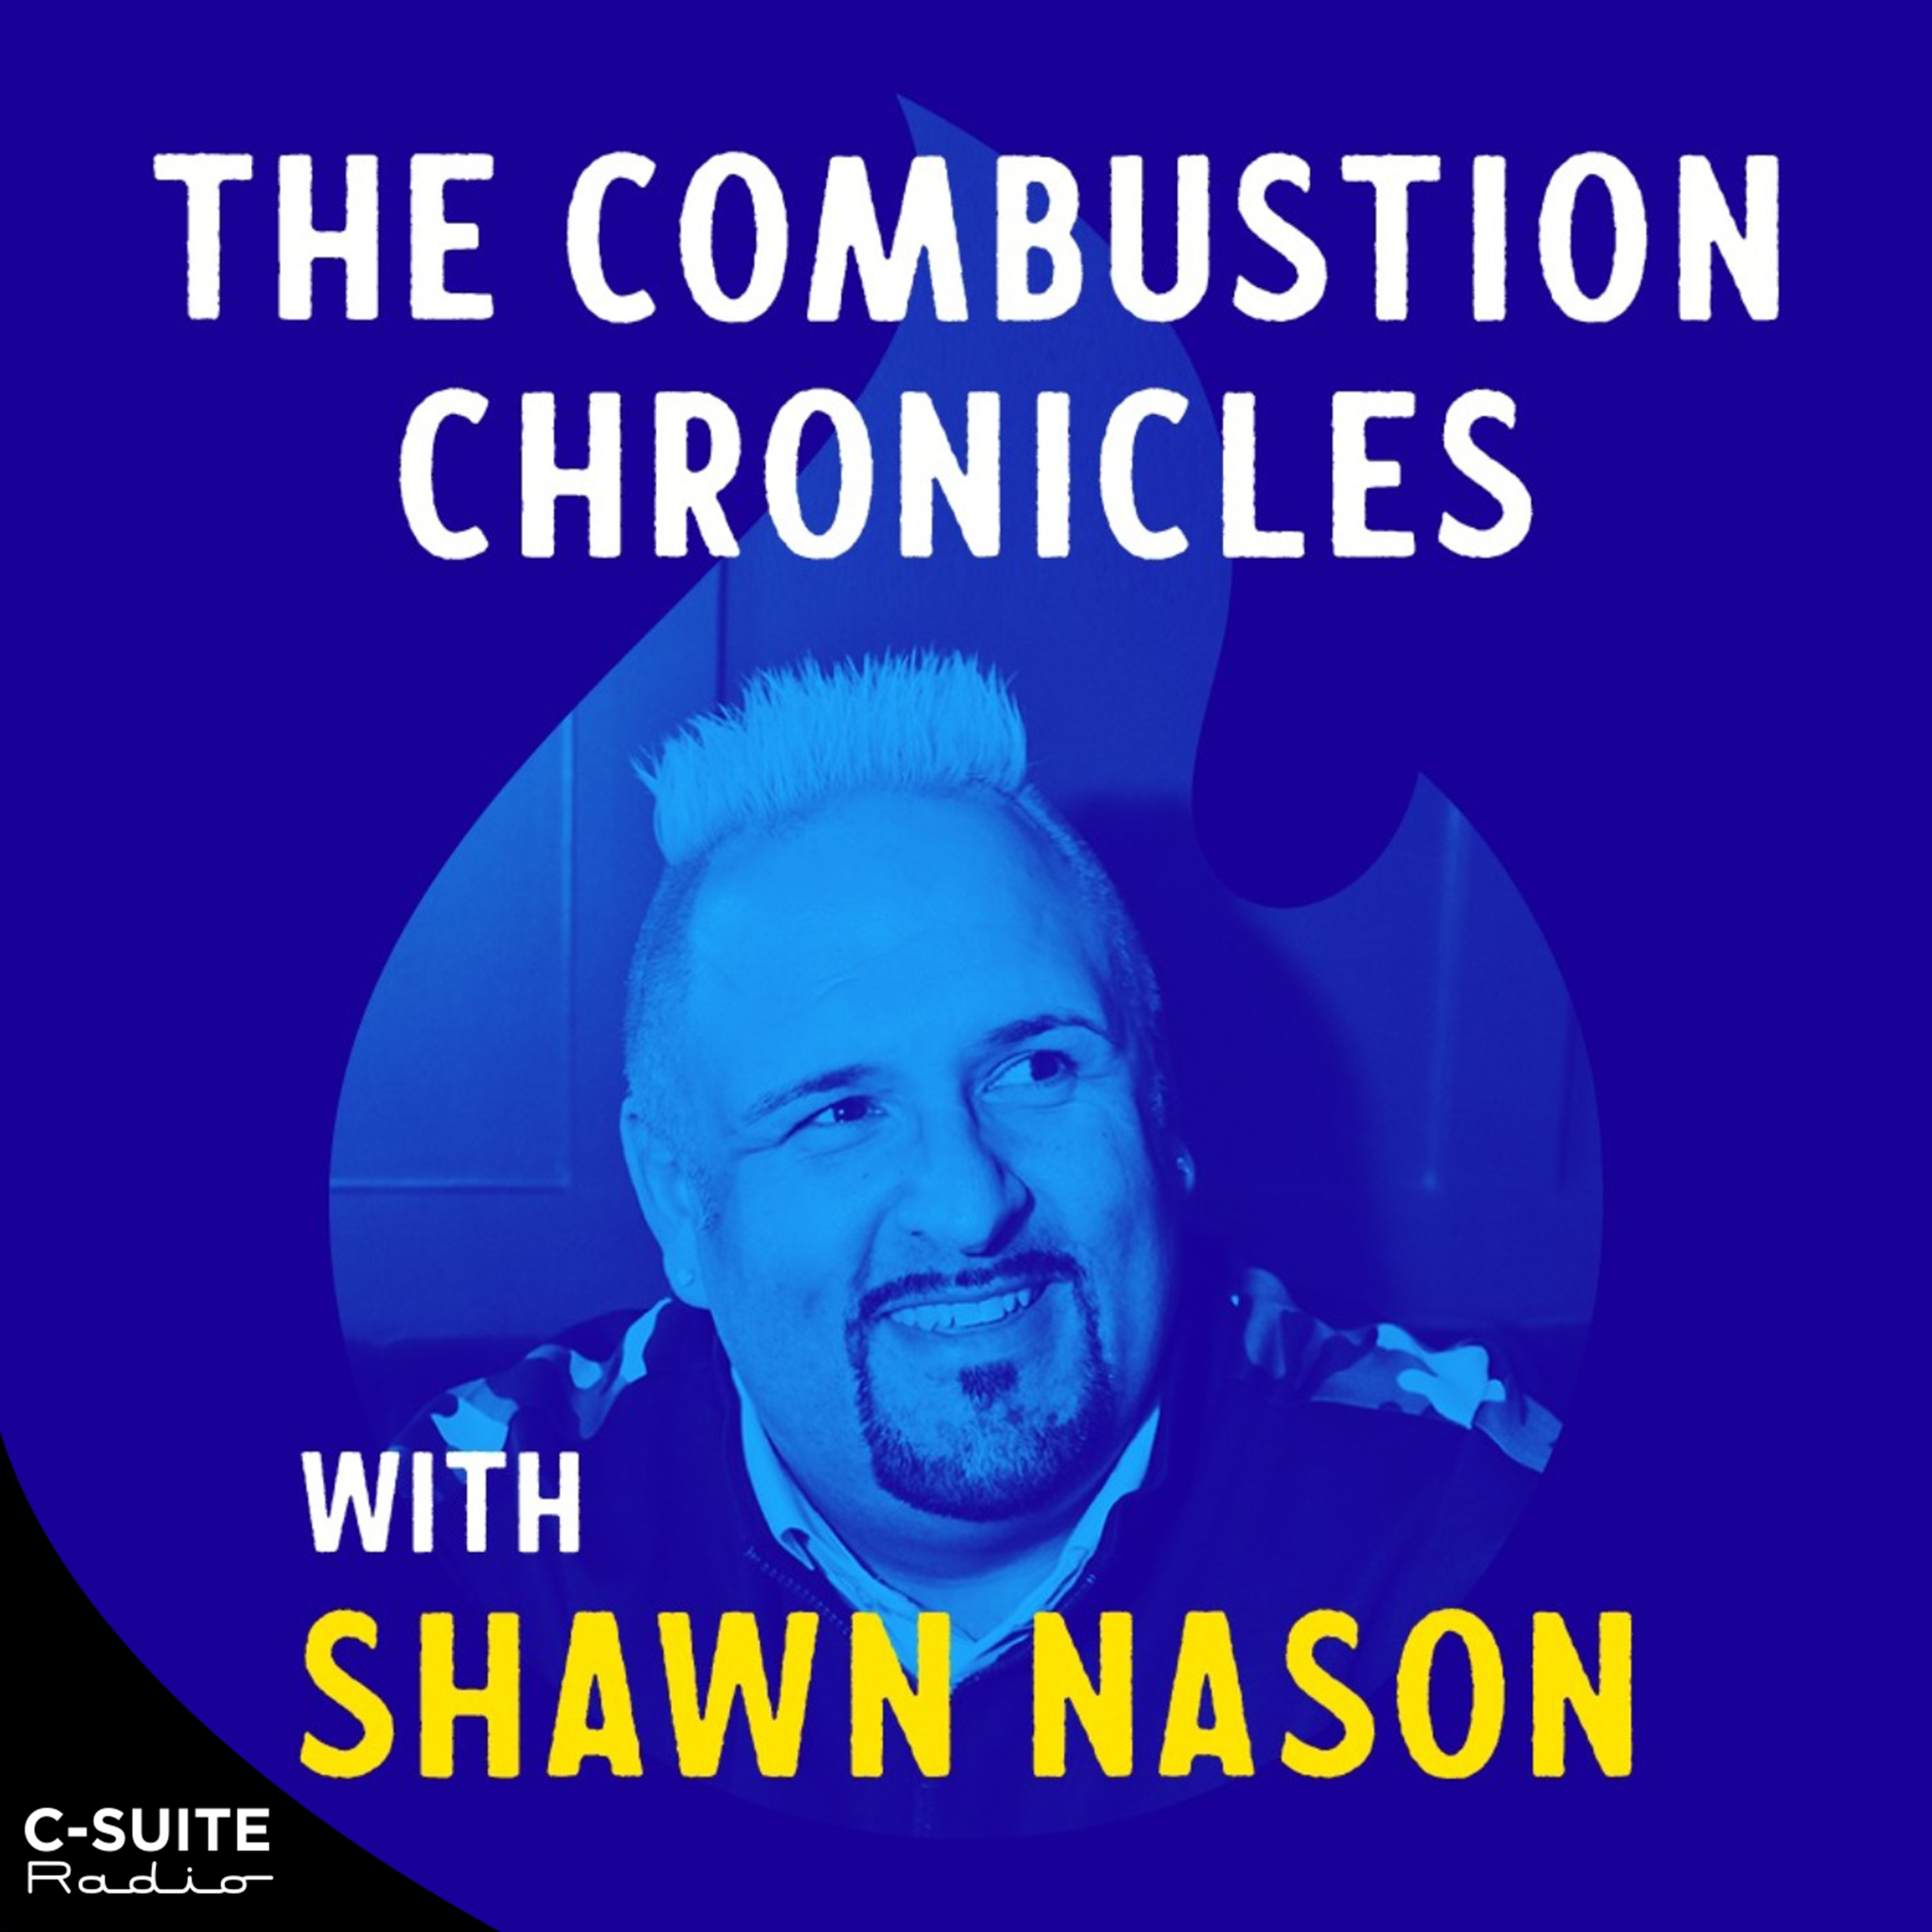 The Combustion Chronicles